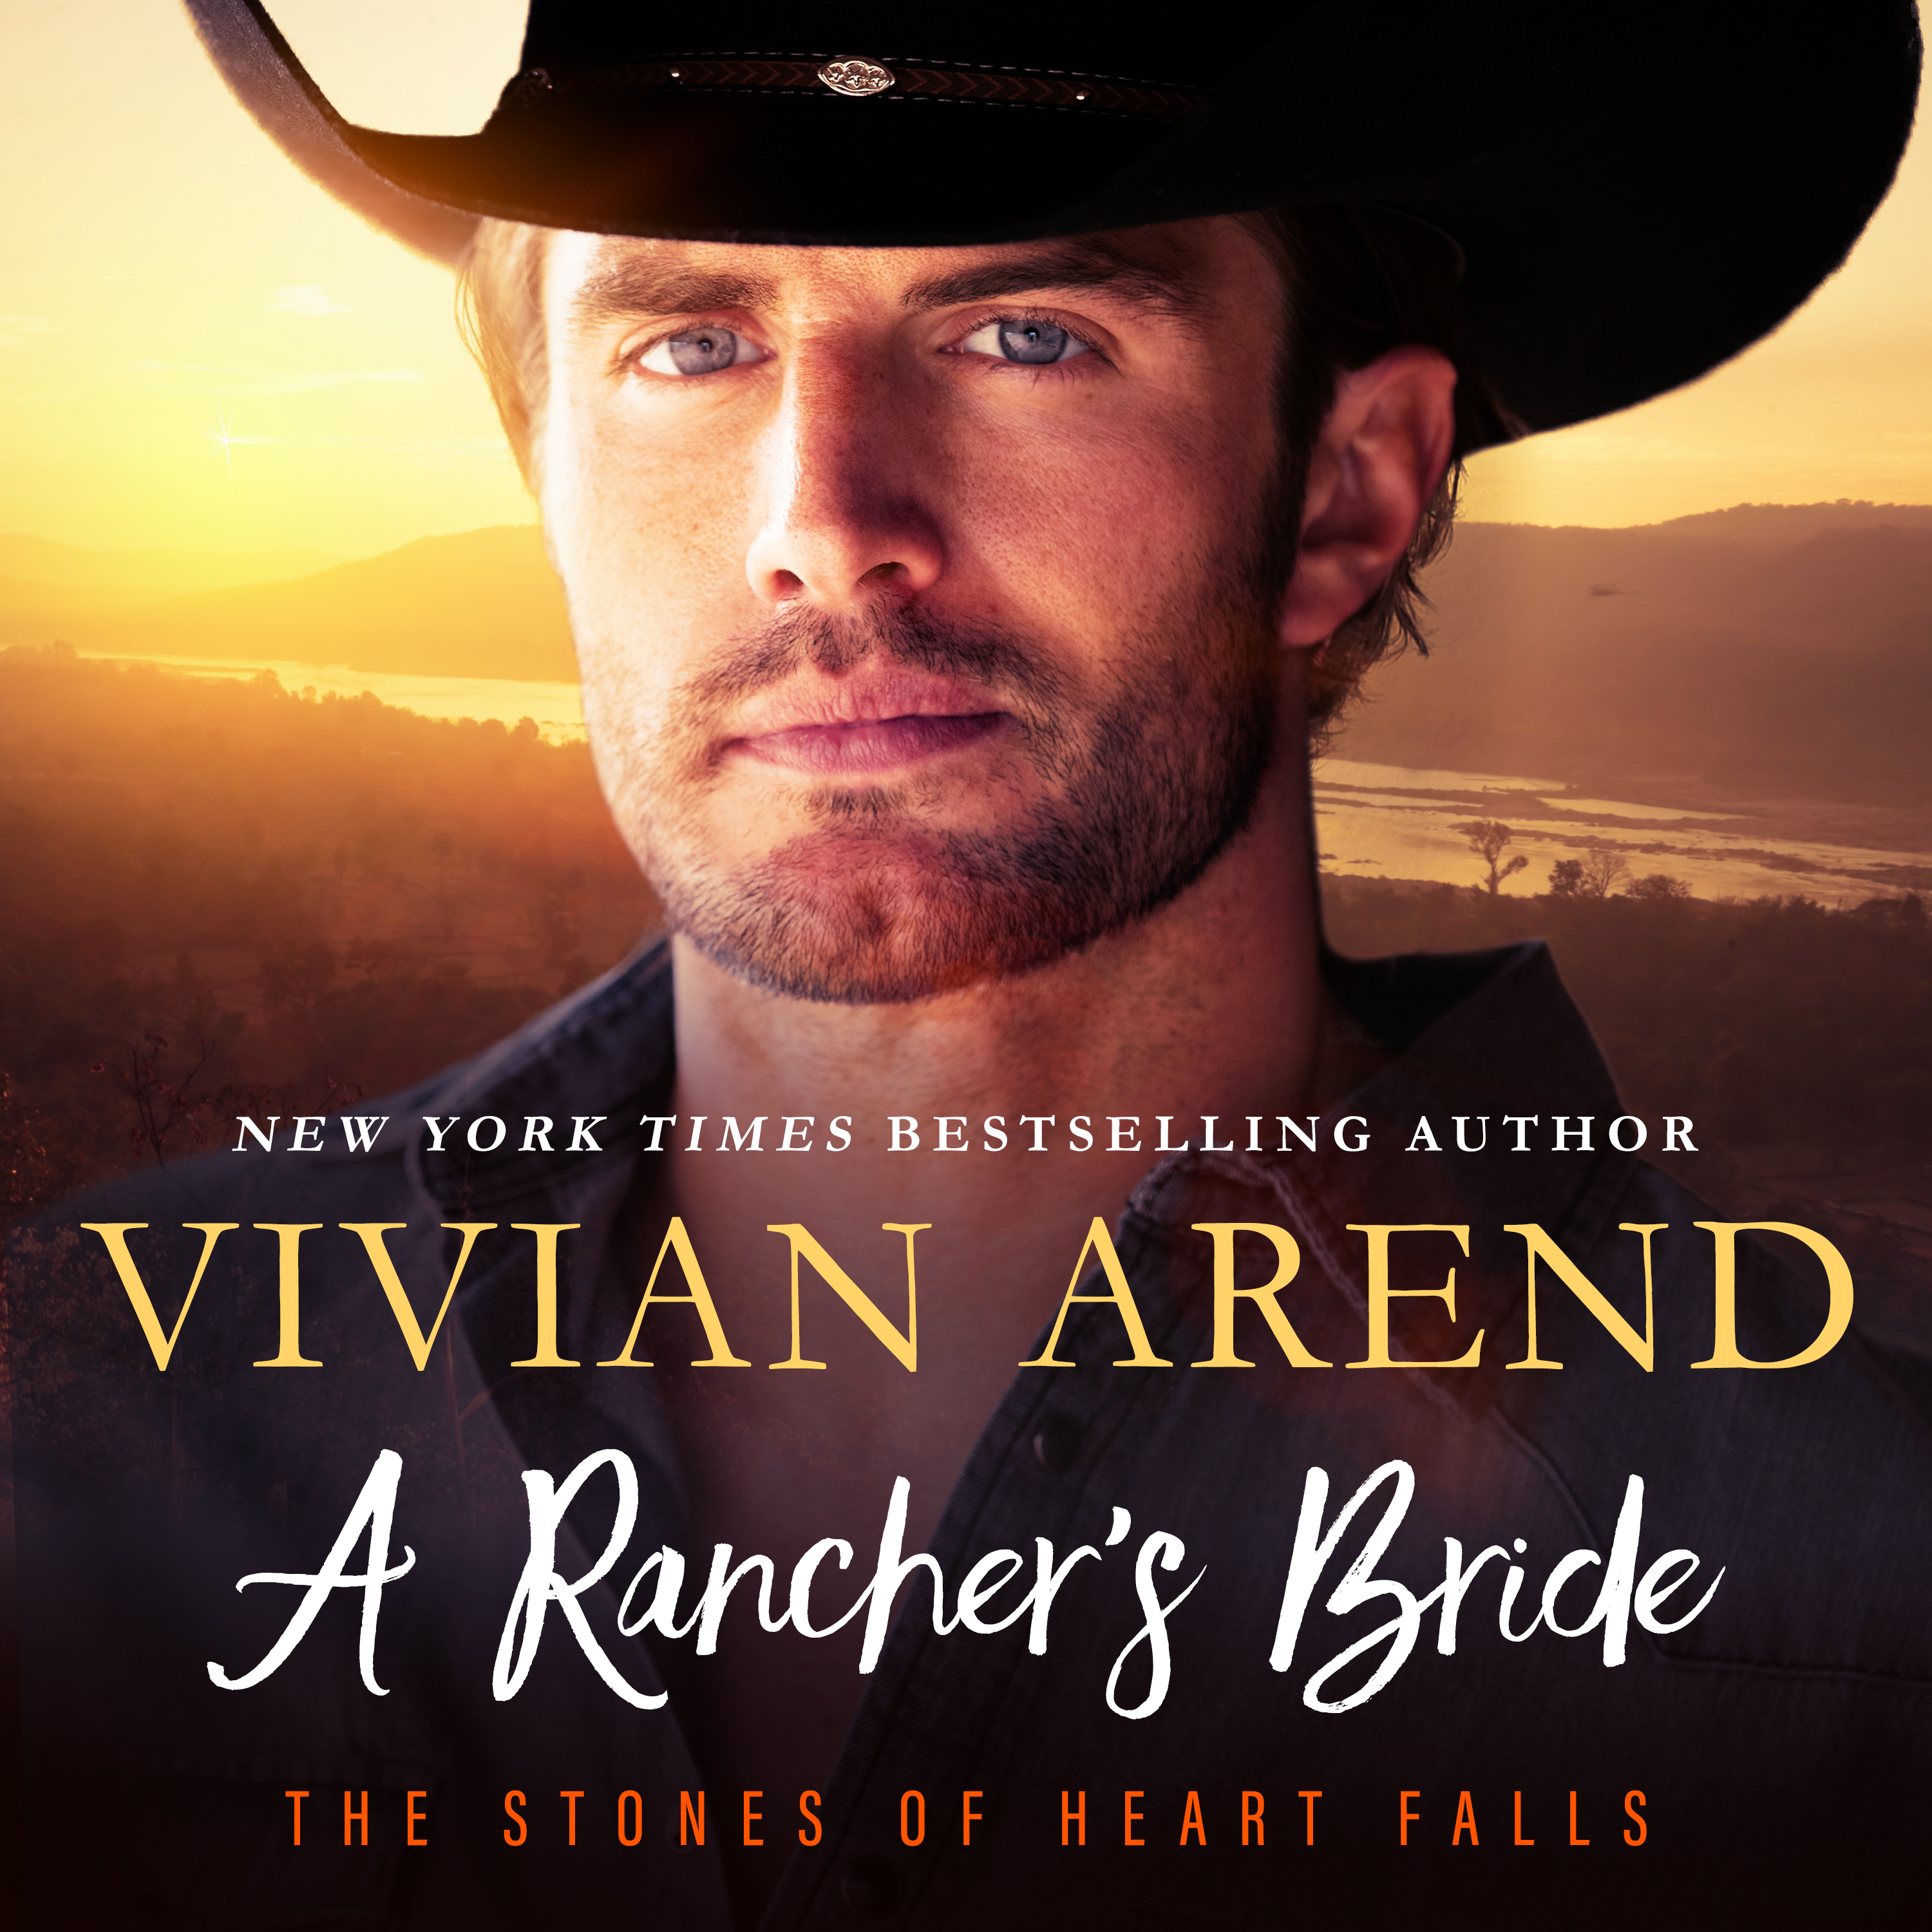 A Rancher's Bride audiobook by Vivian Arend